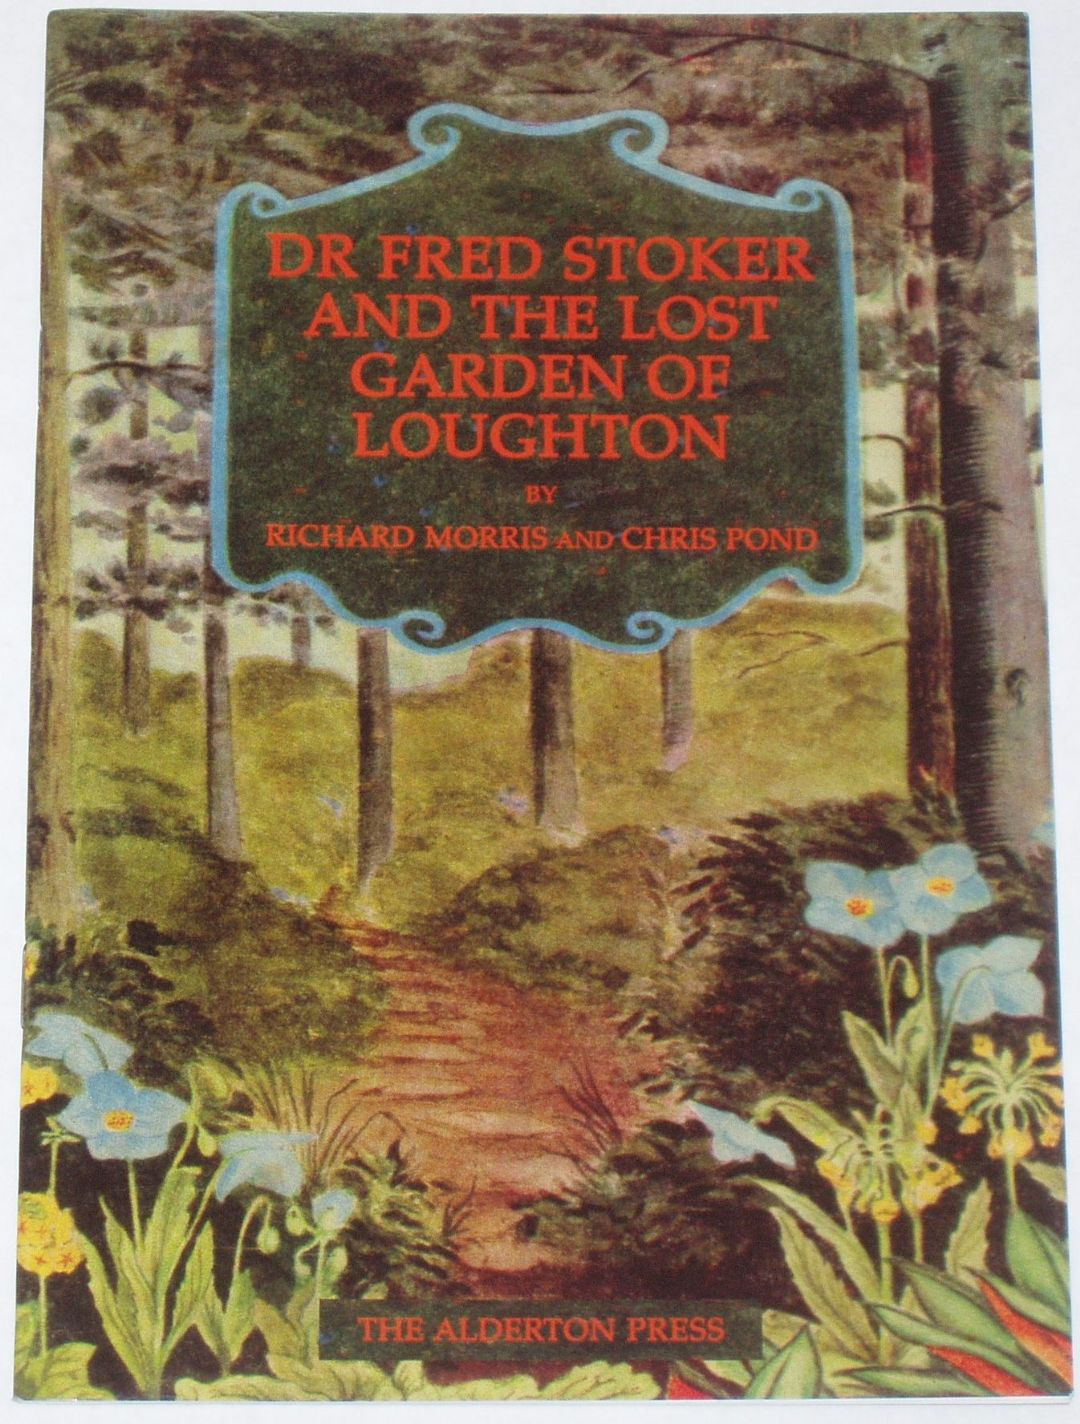 Dr Fred Stoker And The Lost Garden Of Loughton By Richard